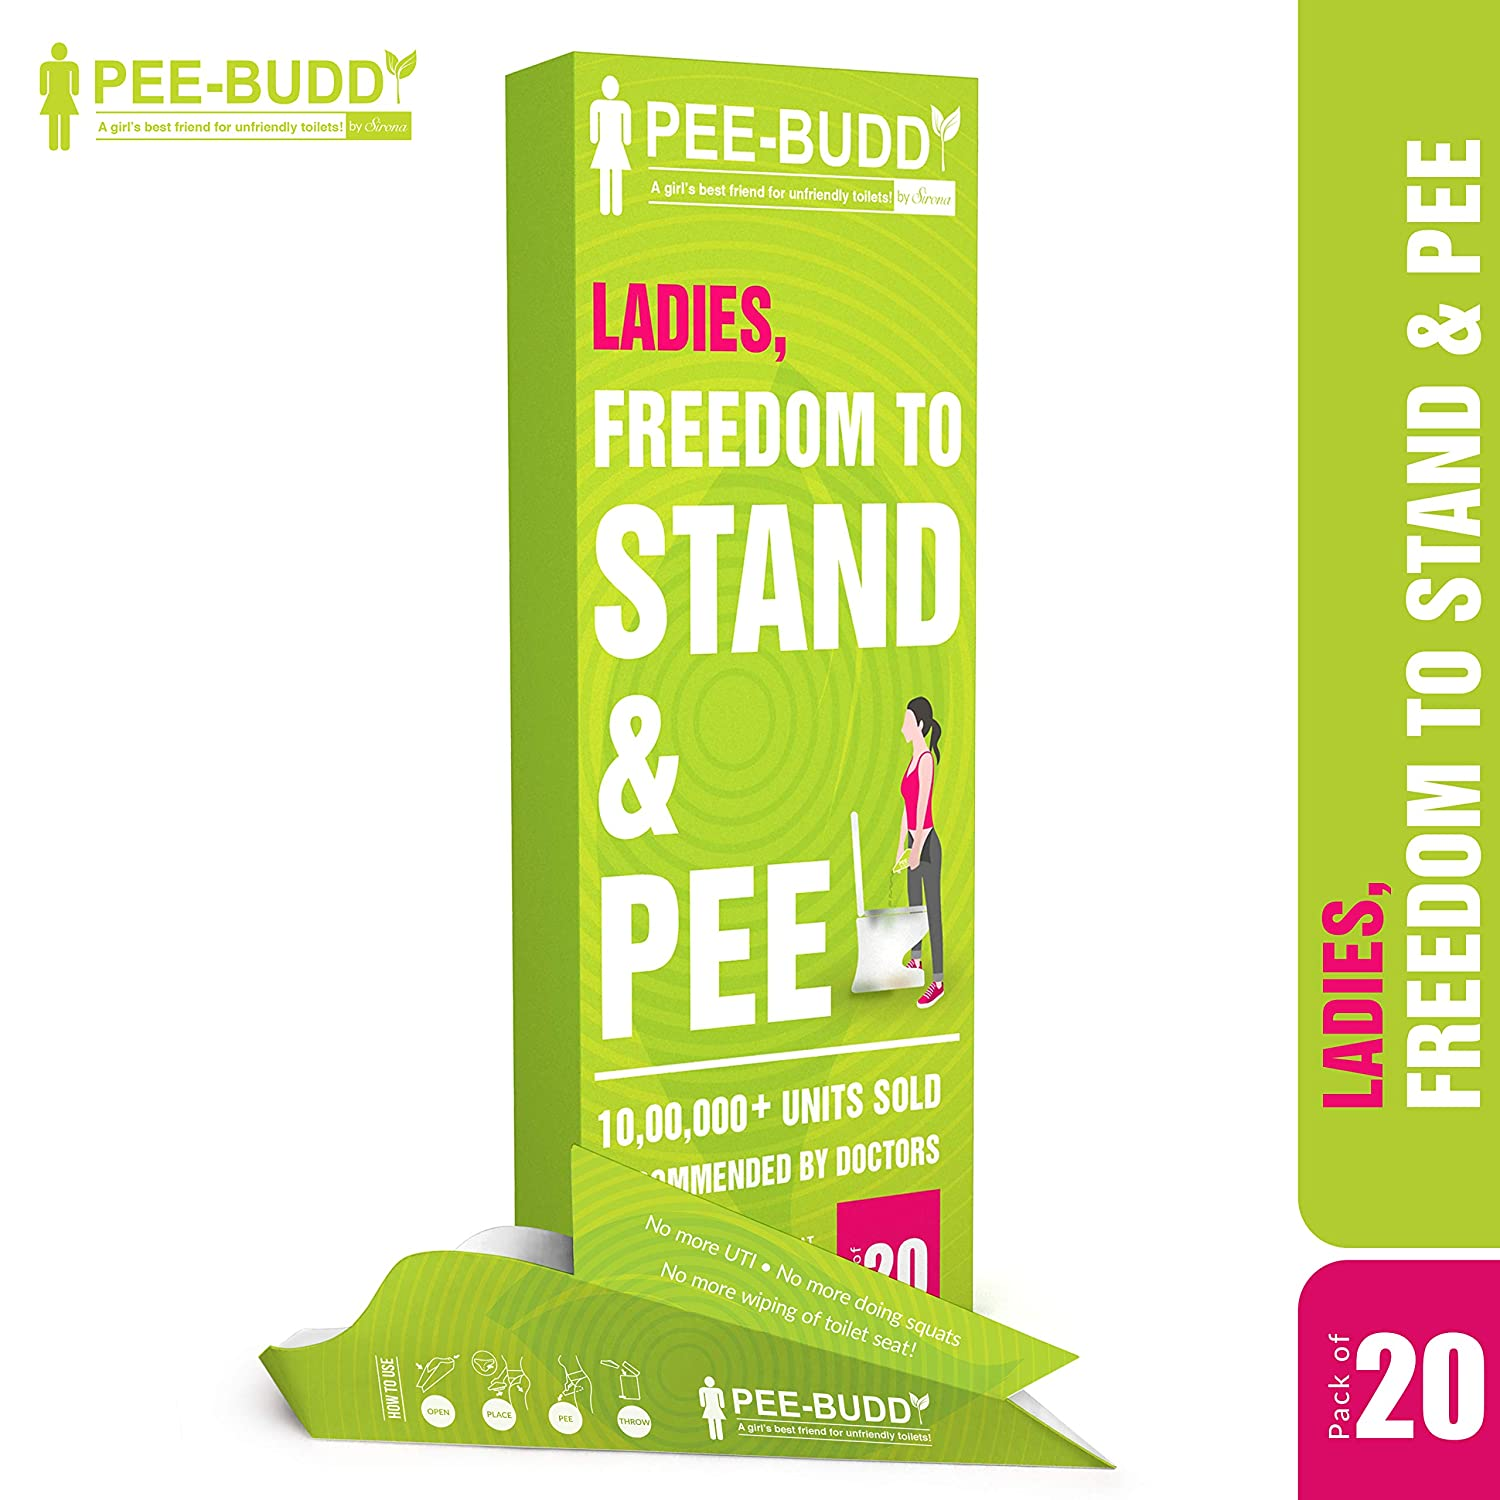 Most girls stand up to pee